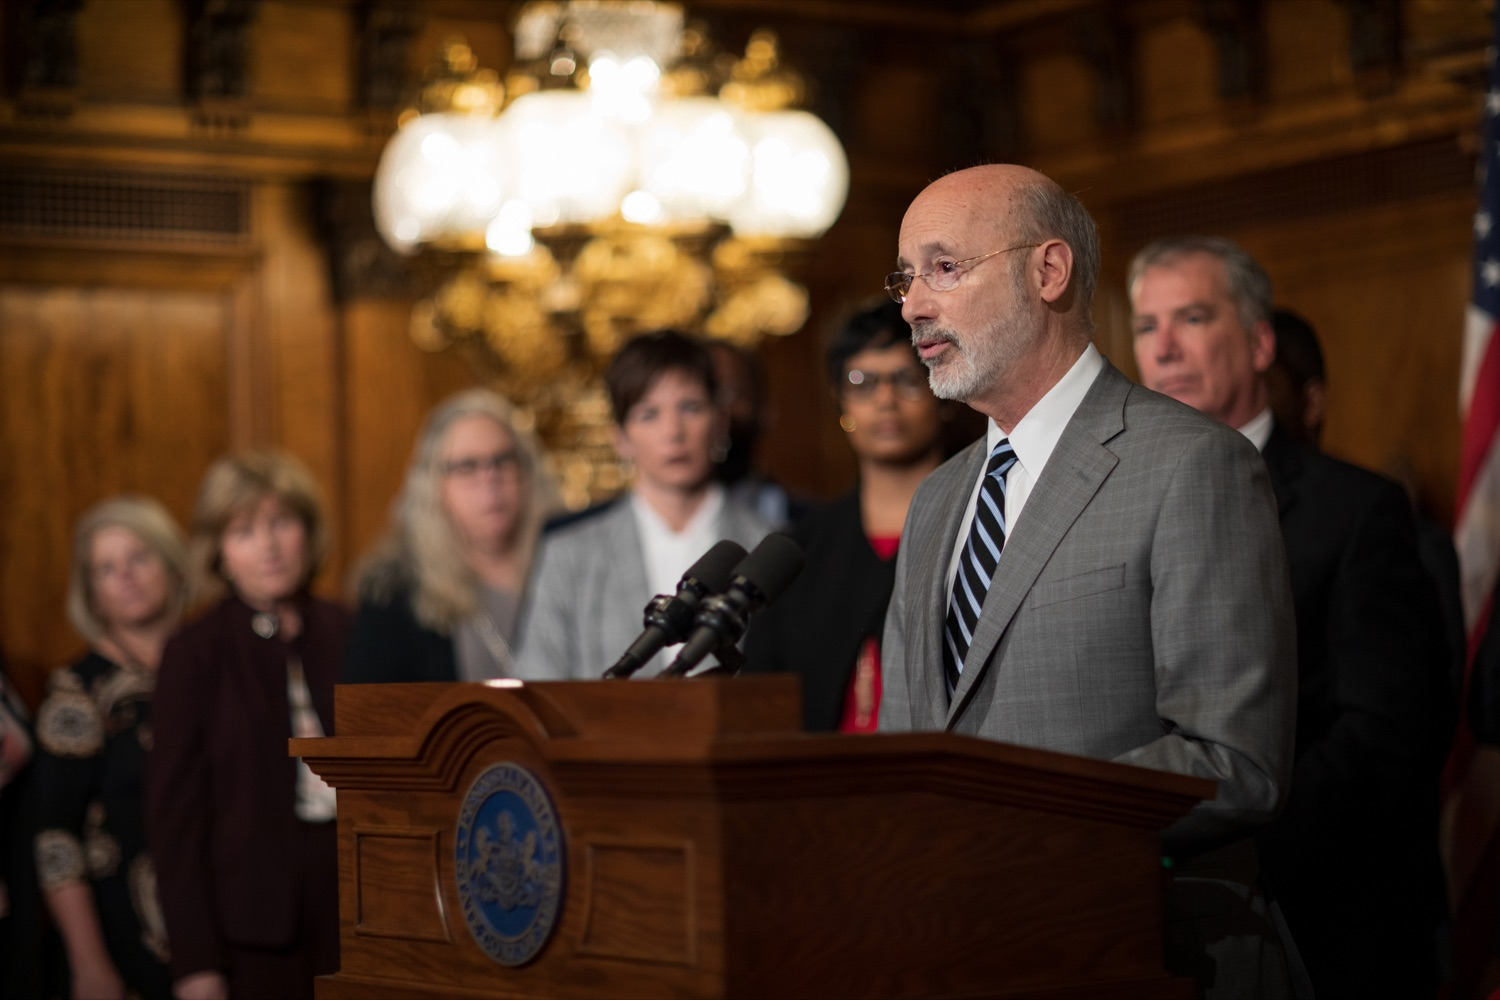 "<a href=""https://filesource.wostreaming.net/commonwealthofpa/photo/17753_GOV_Lead_Contaminants_NK_014.JPG"" target=""_blank"">⇣ Download Photo<br></a>Governor Tom Wolf speaks during a press conference, during which Governor Wolf proposed 2020-21 budget items totaling more than $1.1 billion to support reducing the risks to Pennsylvanians of lead and asbestos, inside the Governor's Reception Room at the State Capitol building in Harrisburg on Wednesday, January 29, 2020."